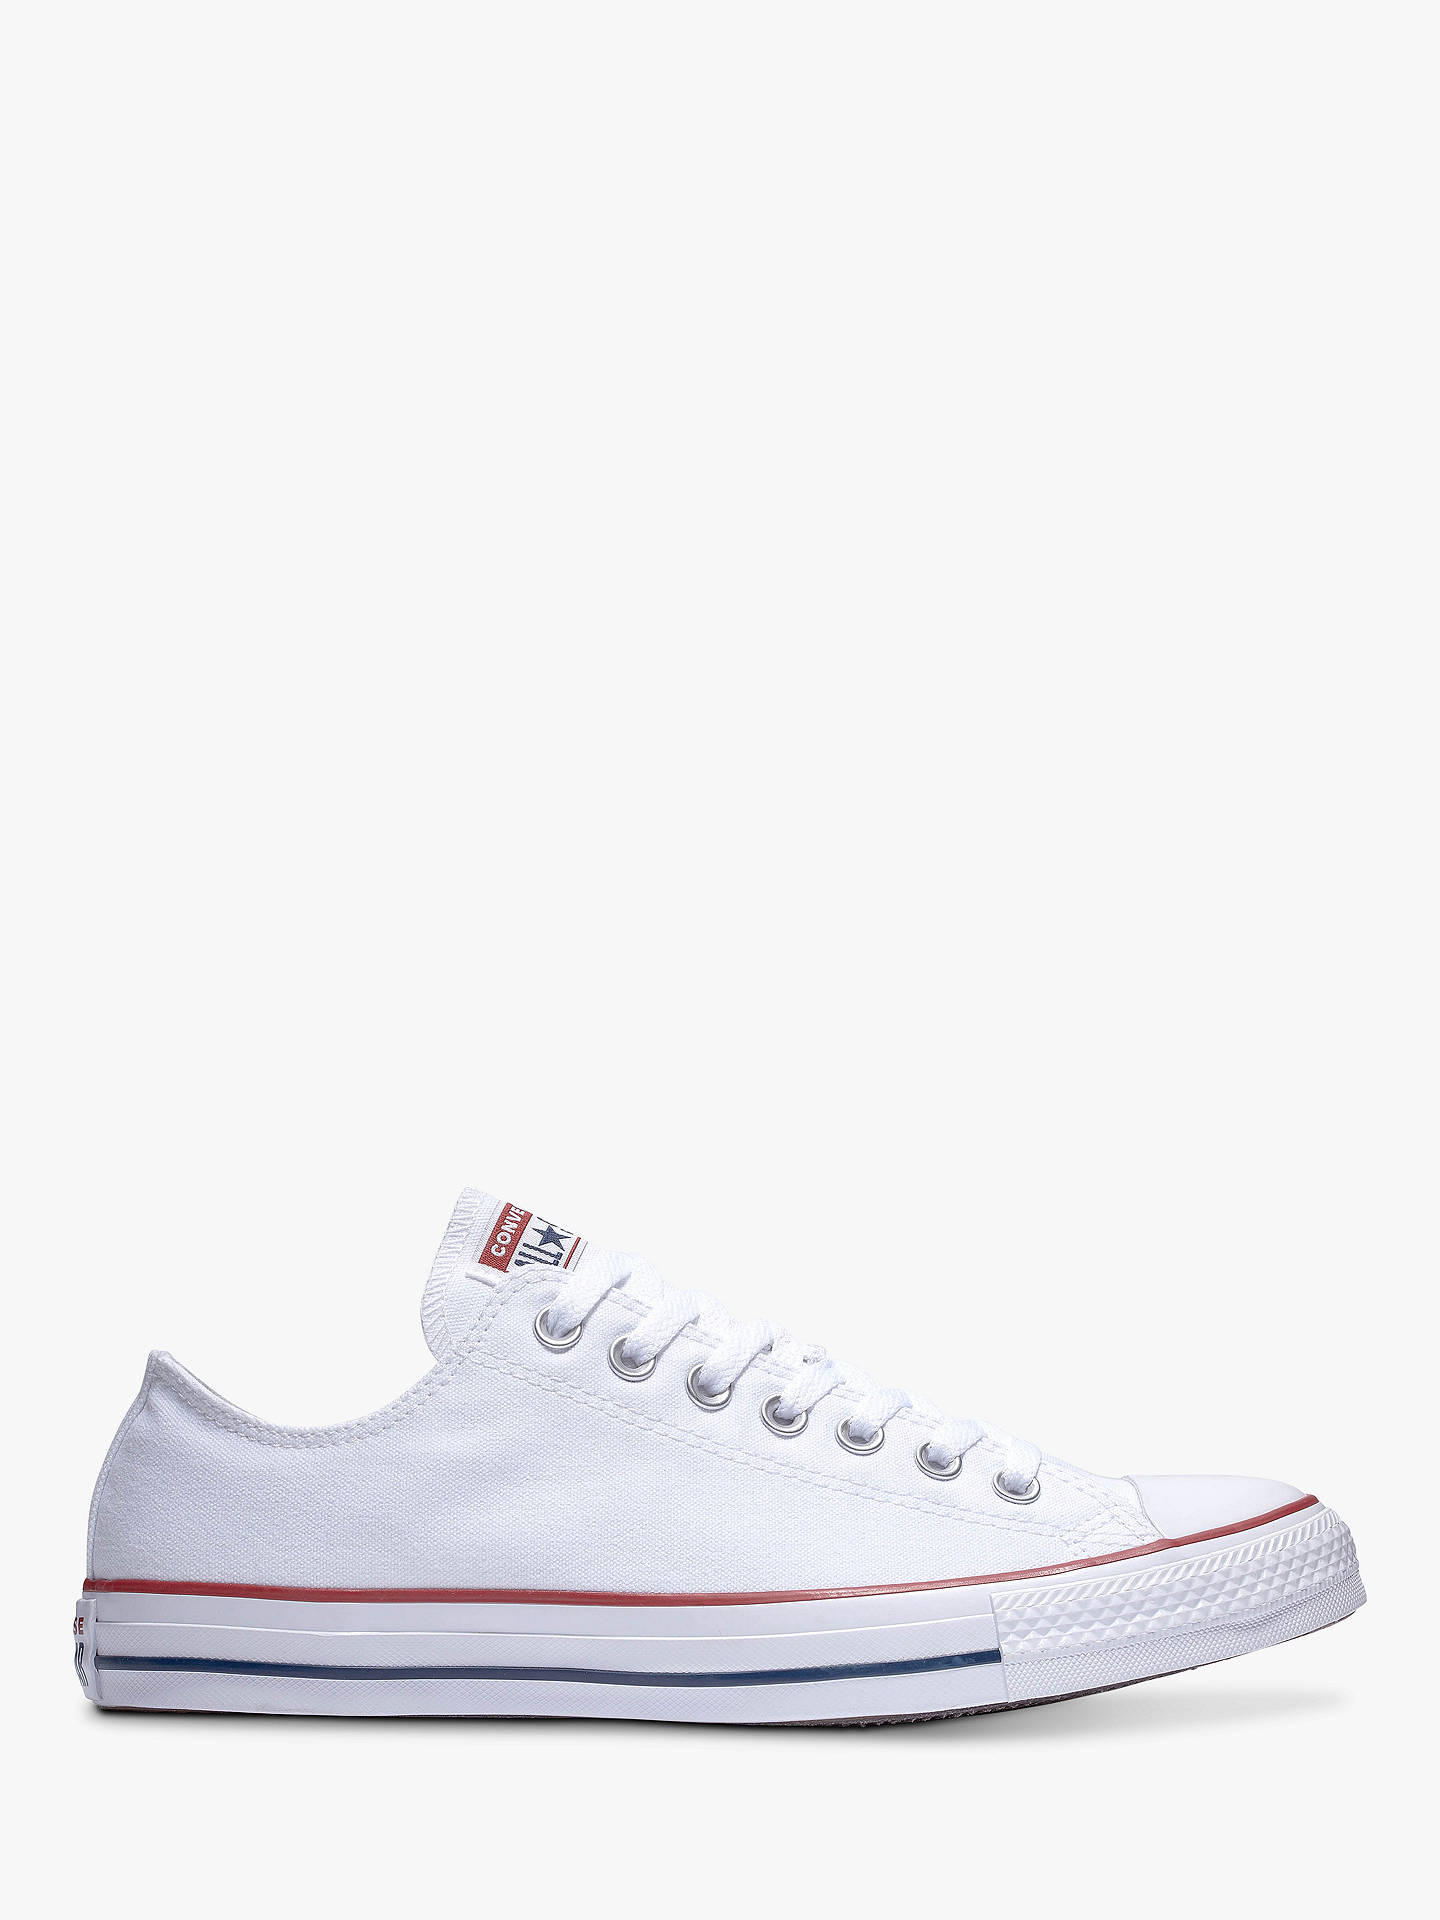 Converse Chuck Taylor All Star Canvas Ox Low-Top Trainers at John ... 7f6cb943fff4